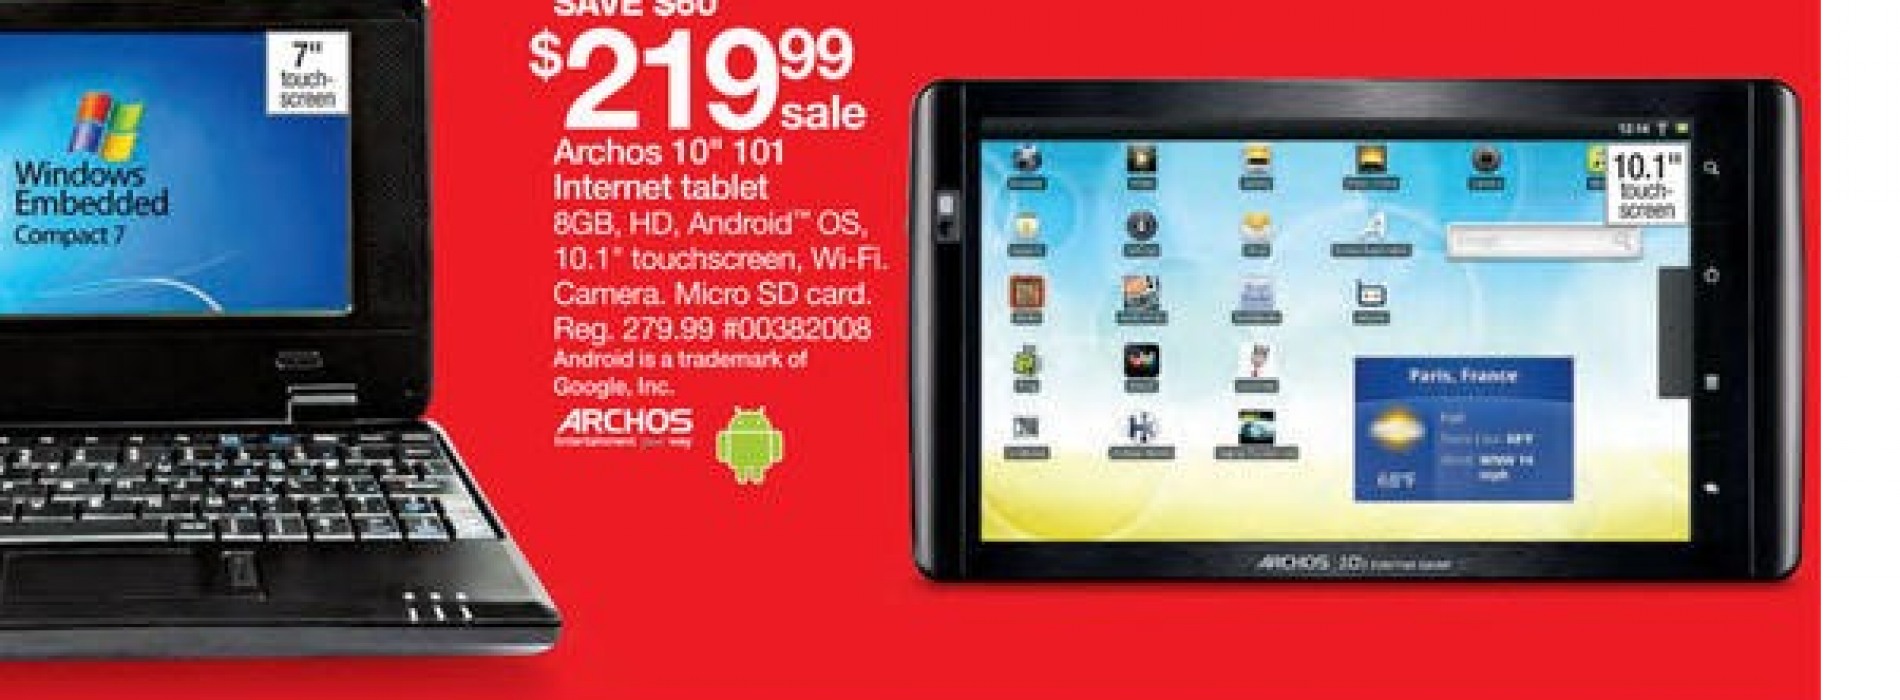 Sears Black Friday ad features $219.99 Archos 101 tablet